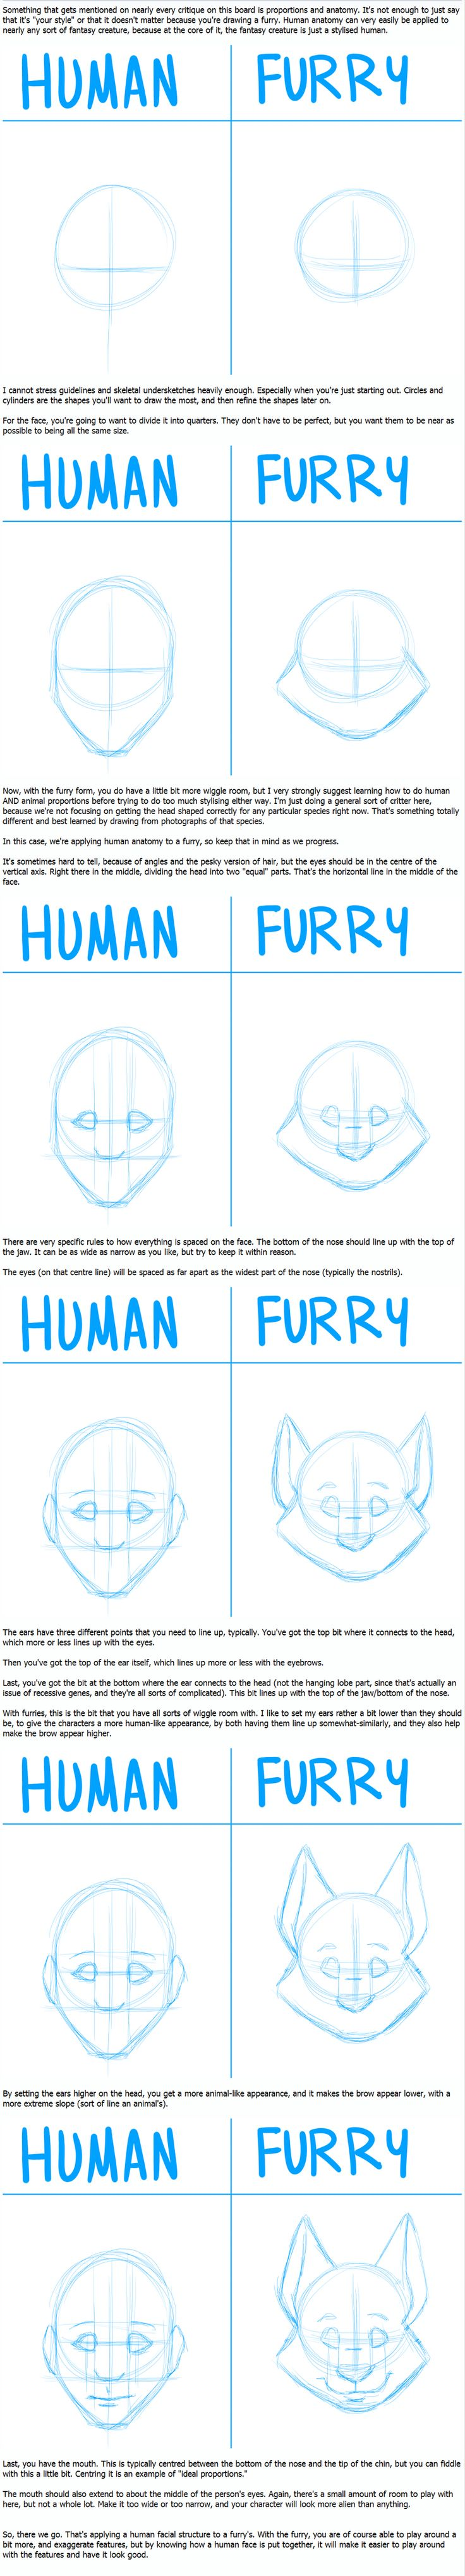 How to turn a human into a furry anime drawing tutorial.